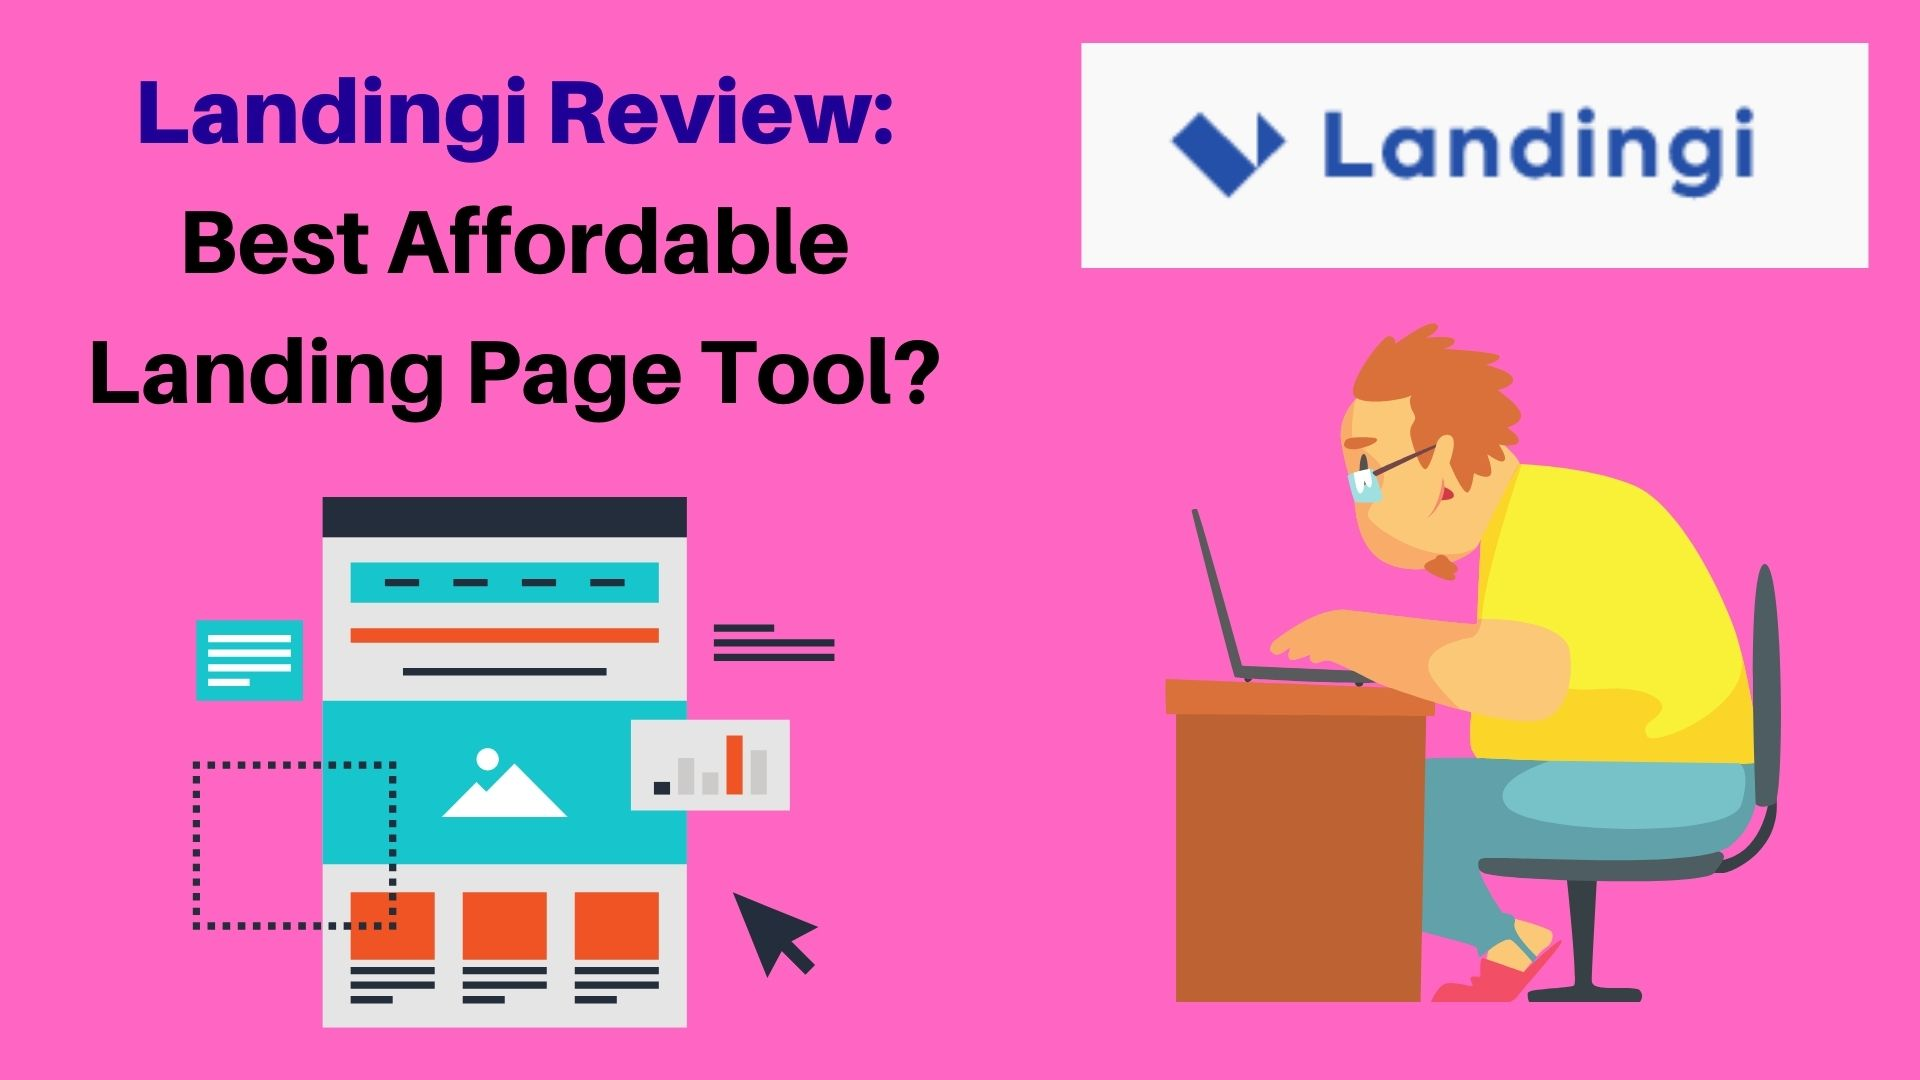 Landingi Review: Is It Reall Easy To Use & Affordable Tool?